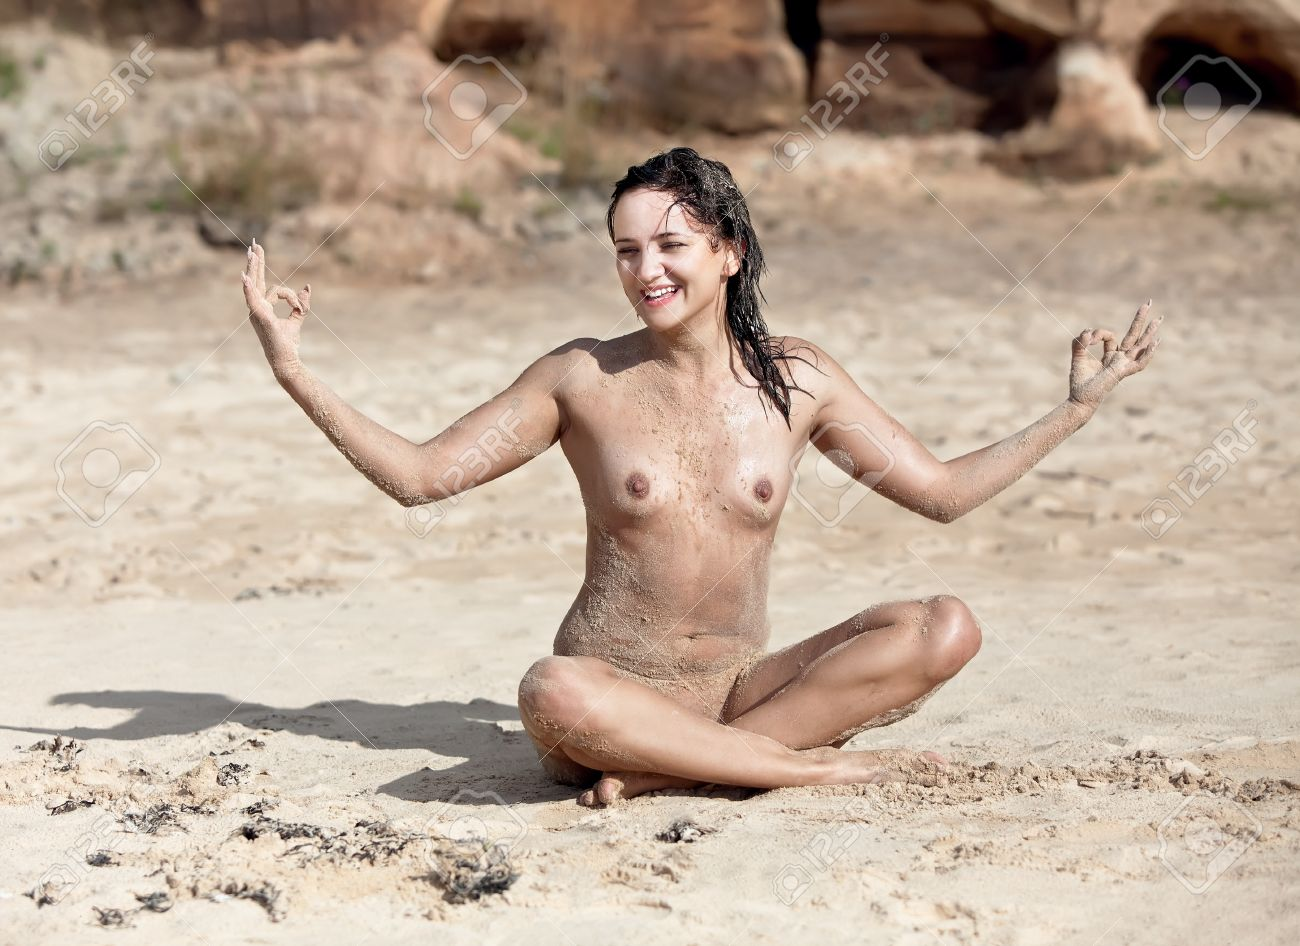 sand naked Naked Yoga. Young woman sitting naked on sand Stock Photo - 12729356